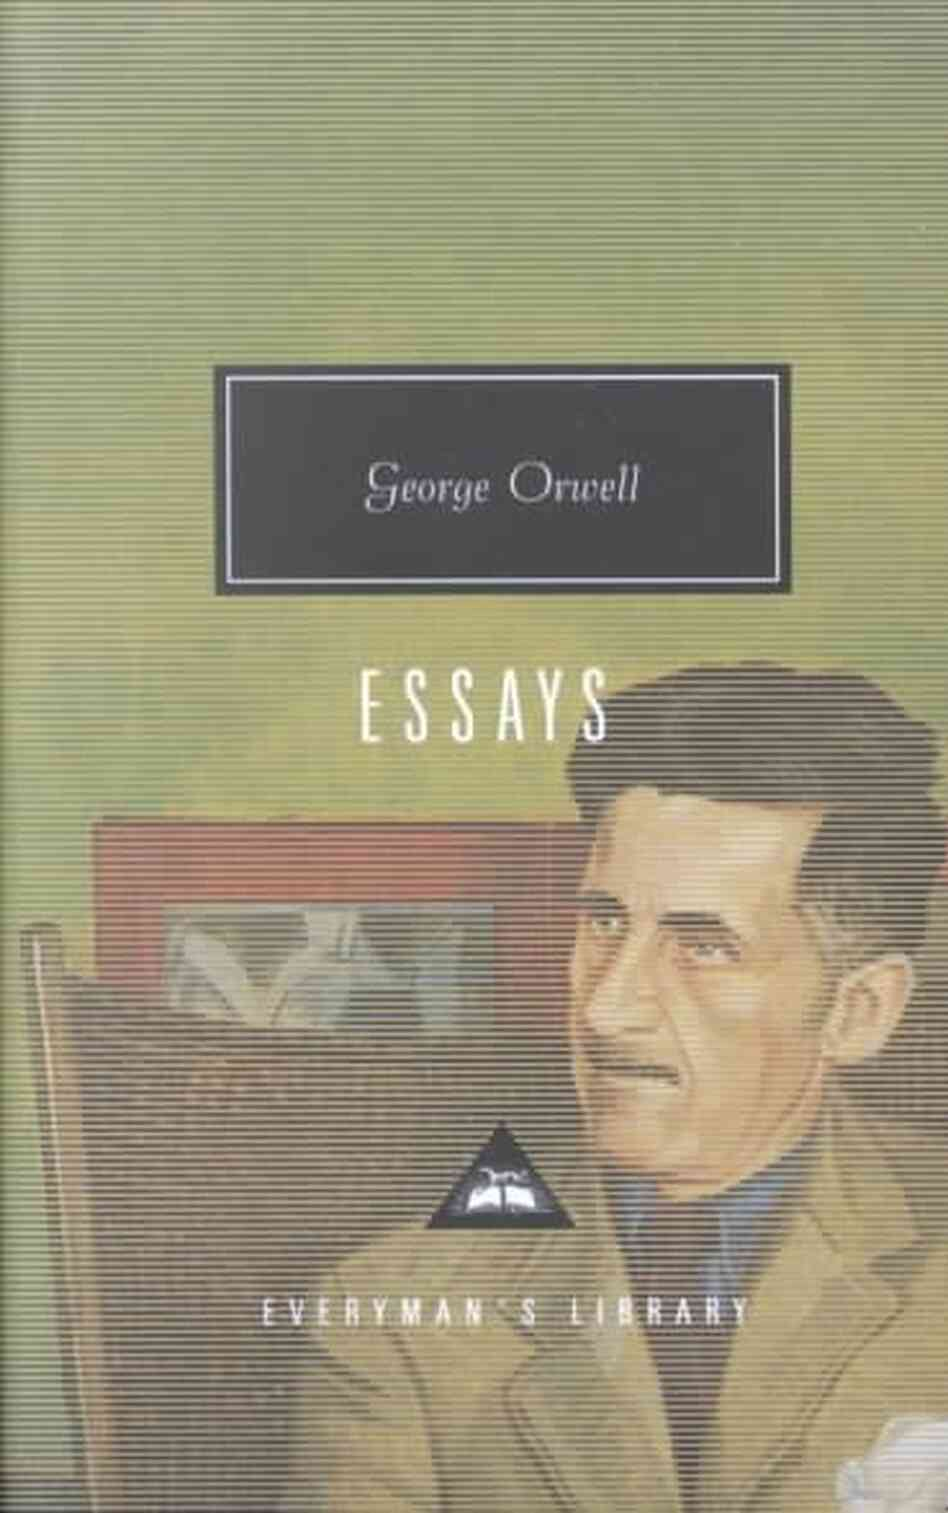 50 essays by george orwell To mark the dublin review of books' 100th issue, we republish co-founder enda  o'doherty's essay on george orwell.